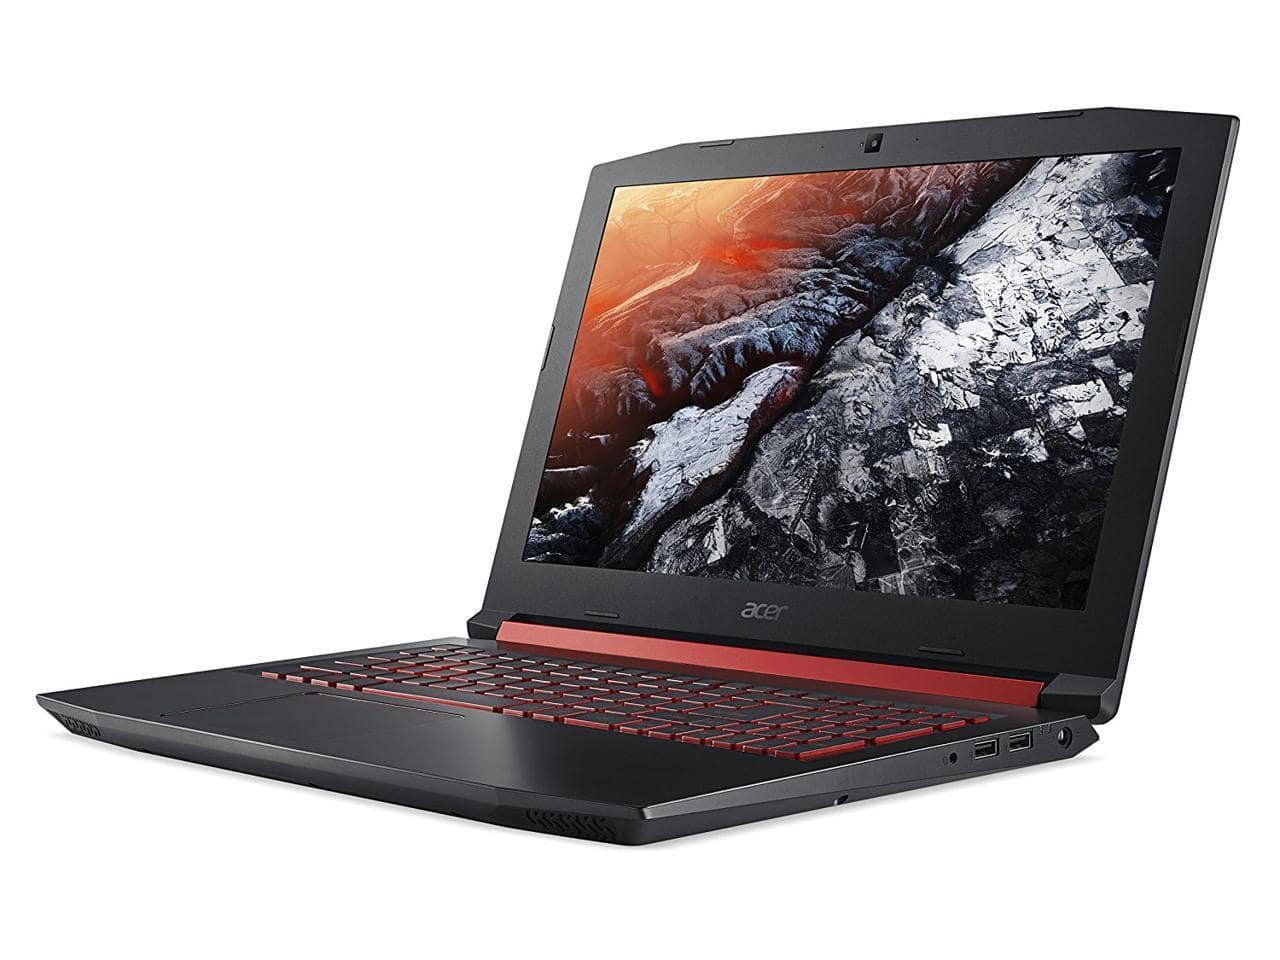 Acer Nitro 5 Gaming Laptop: i5-7300HQ, 15.6'' FHD IPS, 8GB DDR4, 256GB SSD, 1050 Ti 4GB, Type-C, Win10H @ $700 + F/S